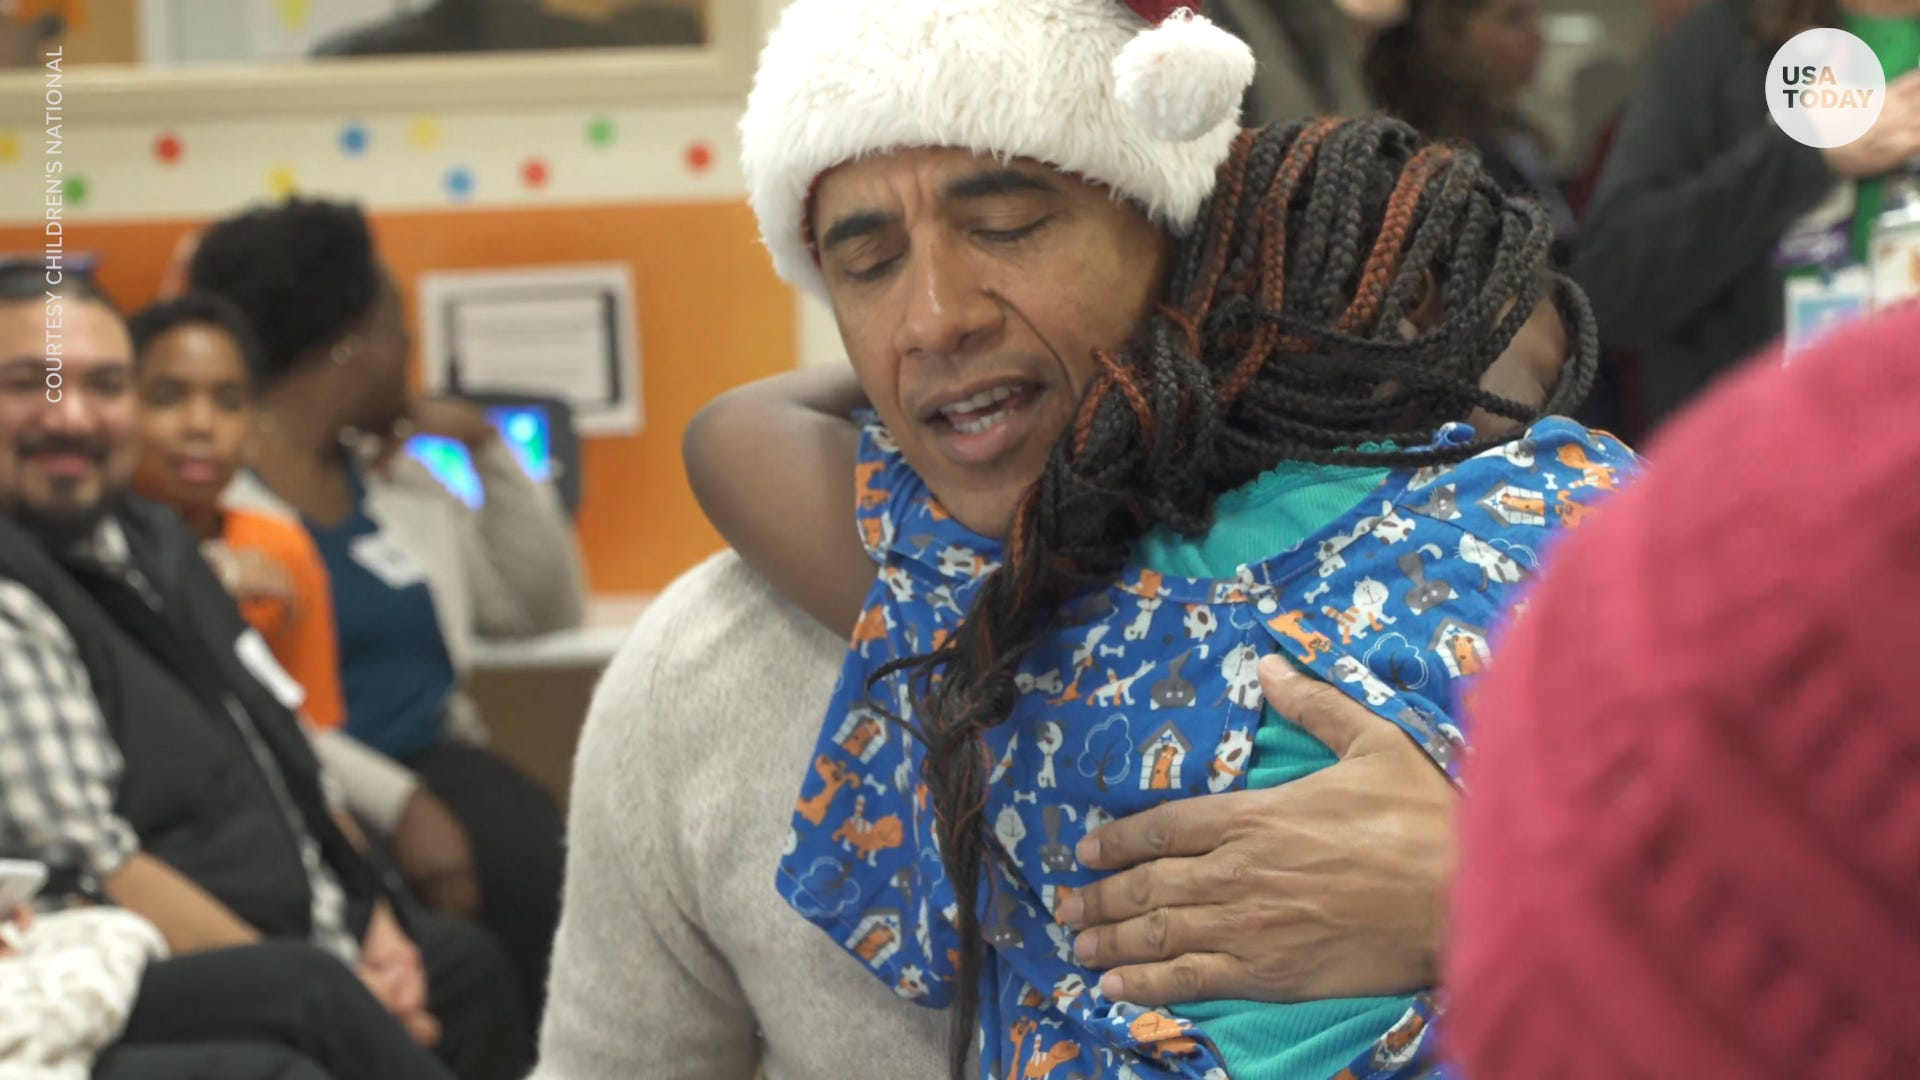 In his Santa hat, Obama surprises kids at children's hospital with toys before Christmas